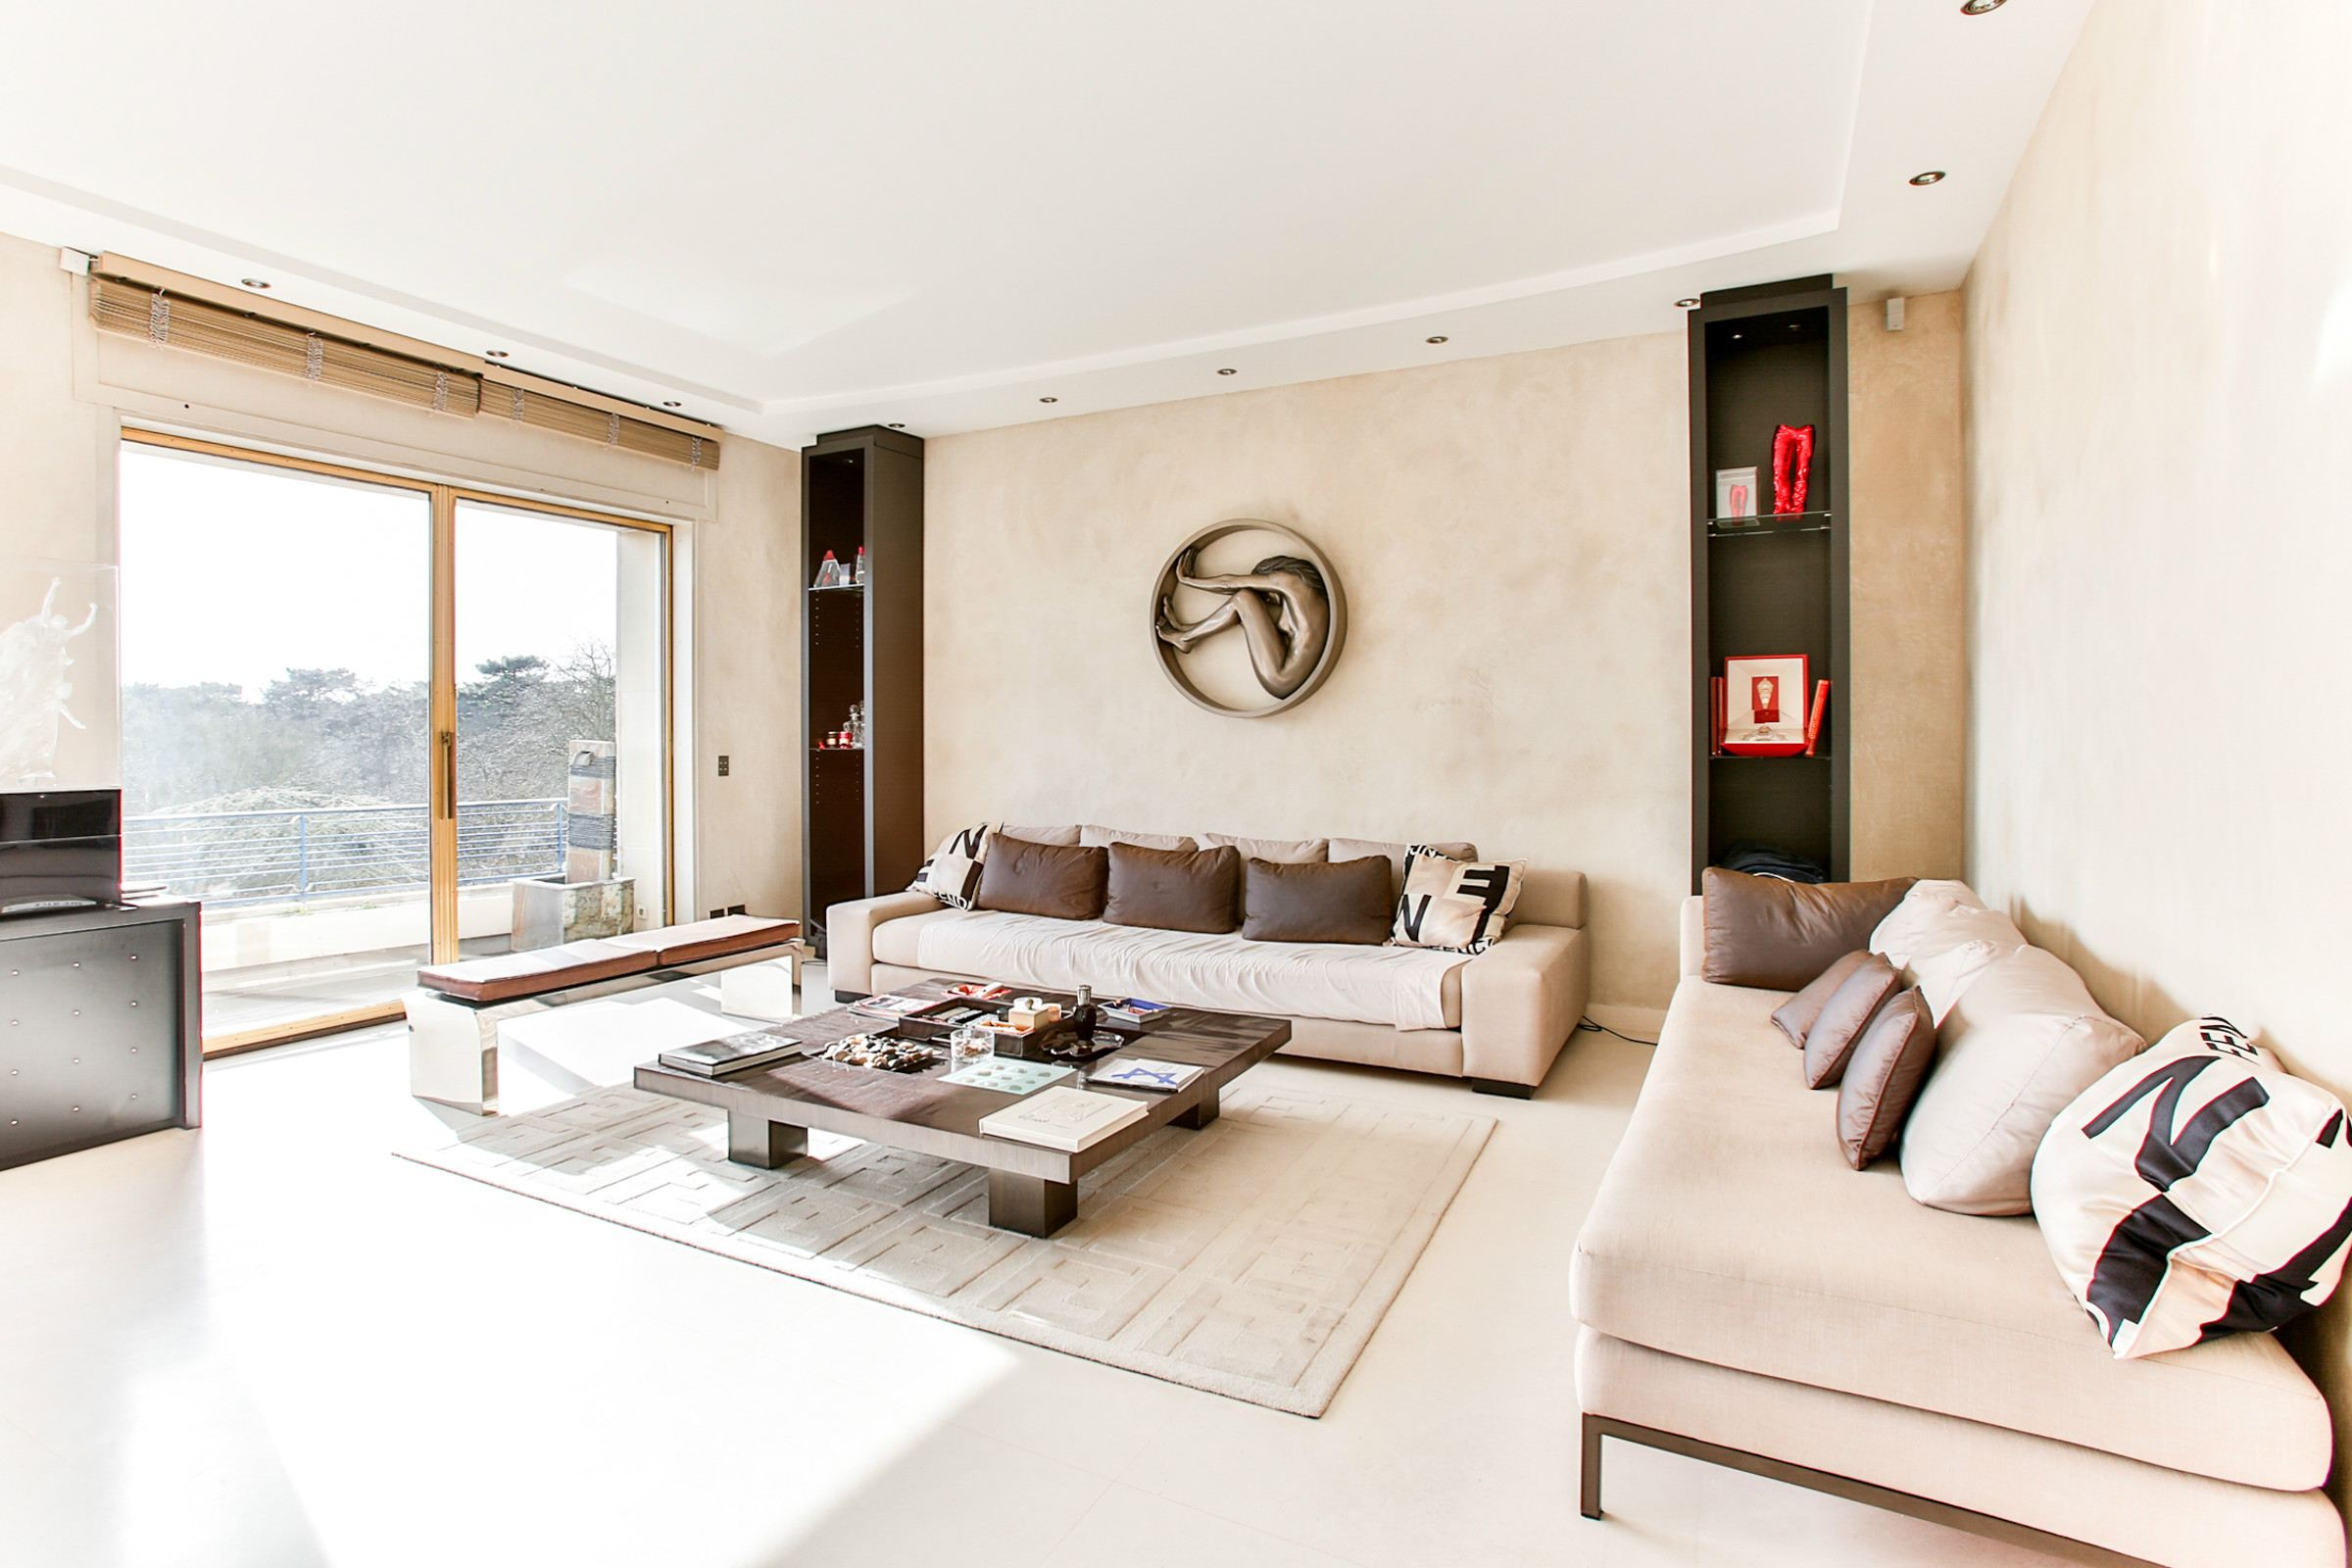 Property For Sale at Neuilly - A 175 sq.m apartment, fully renovated by a designer